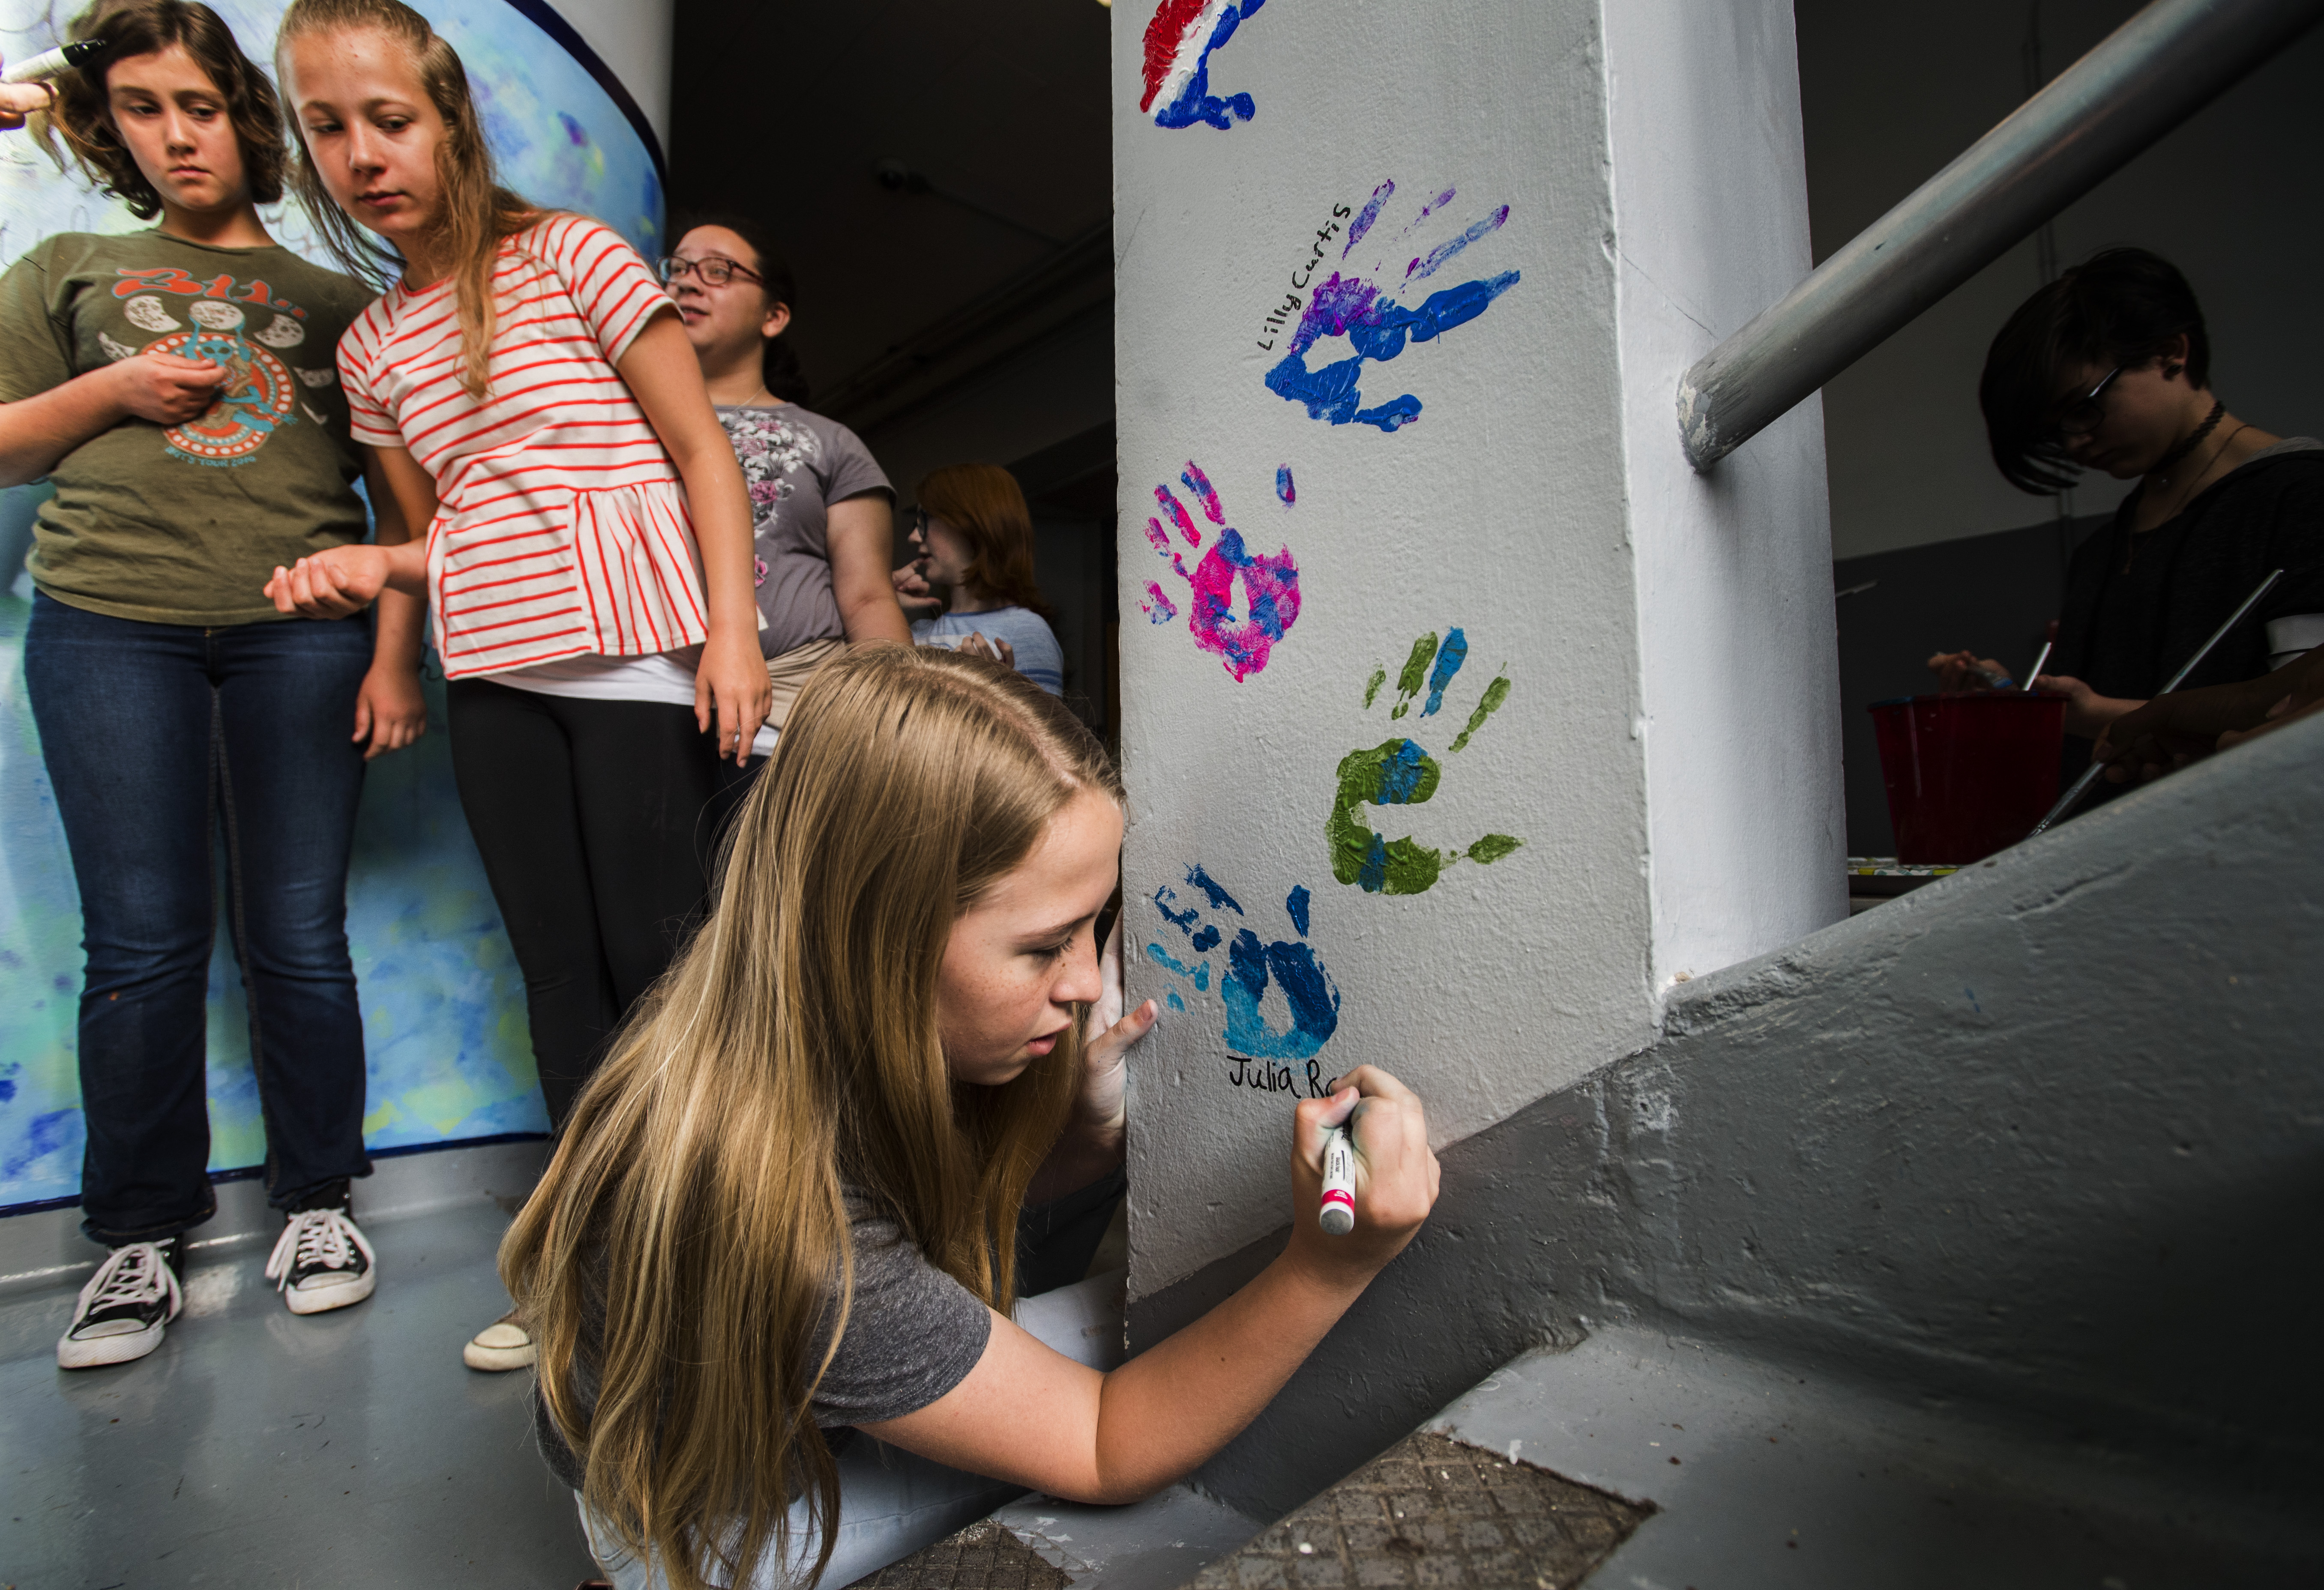 Student artist Julia Rapp signs her name below her handprint Tuesday, May 22, 2018, at North Middle School. Students in the Leadership Club spent the last month painting a mural in the lower staircase leading to school's music rooms and added their handprints and signatures as the final chapter to their work. (The Gazette, Christian Murdock)